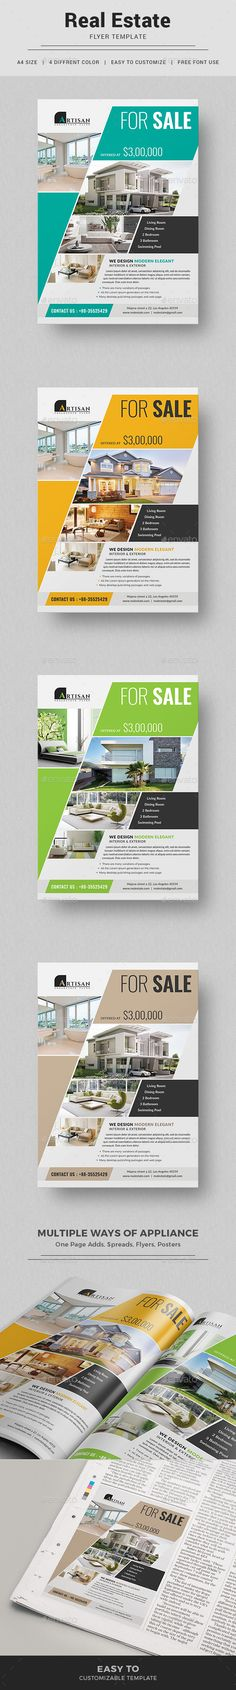 Real Estate Flyer Template PSD. Download here: https://graphicriver.net/item/real-estate-flyer/17495508?ref=ksioks